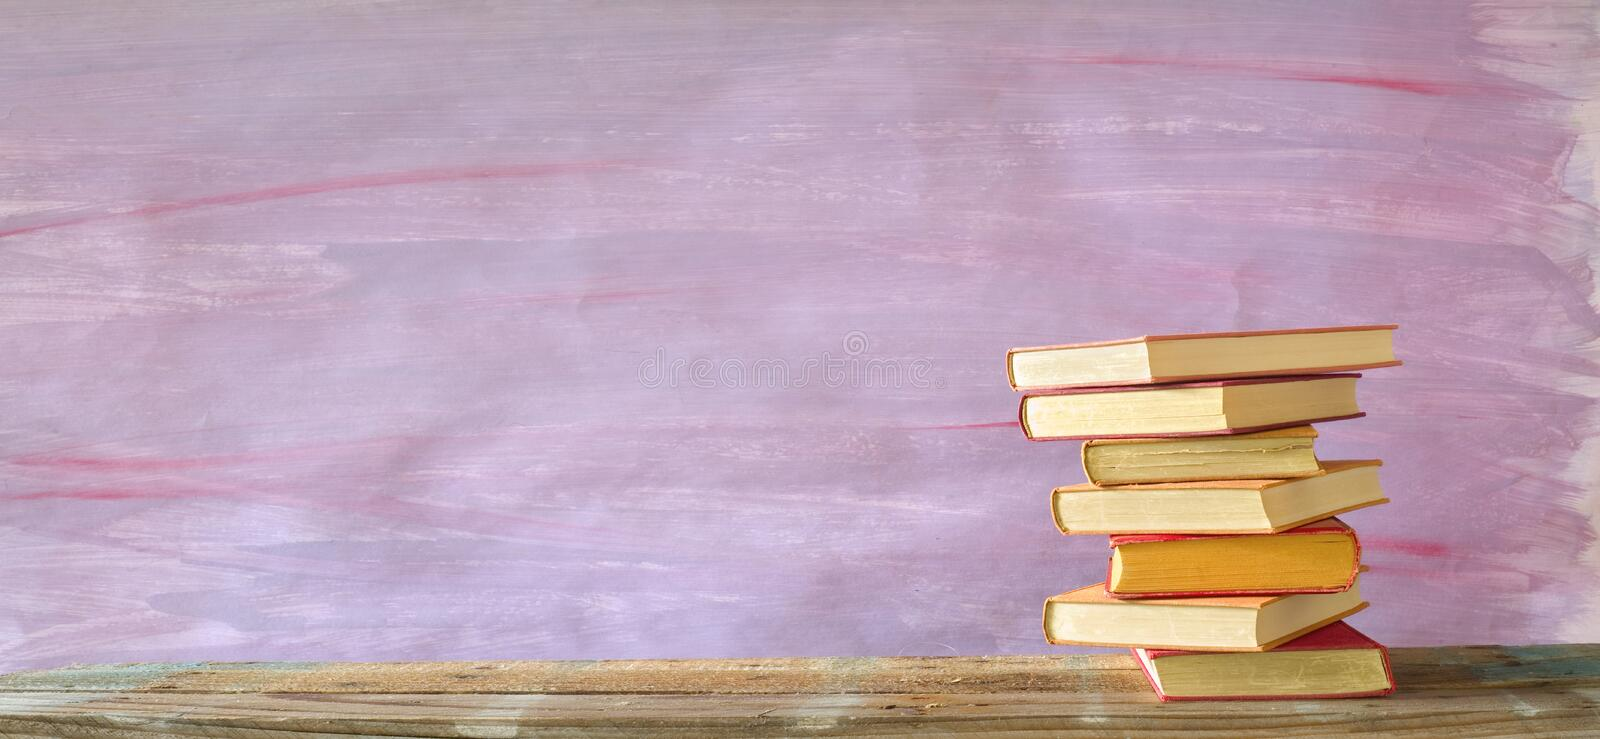 Stack of multicolored hardback books, reading, education, literature. Copy space stock image